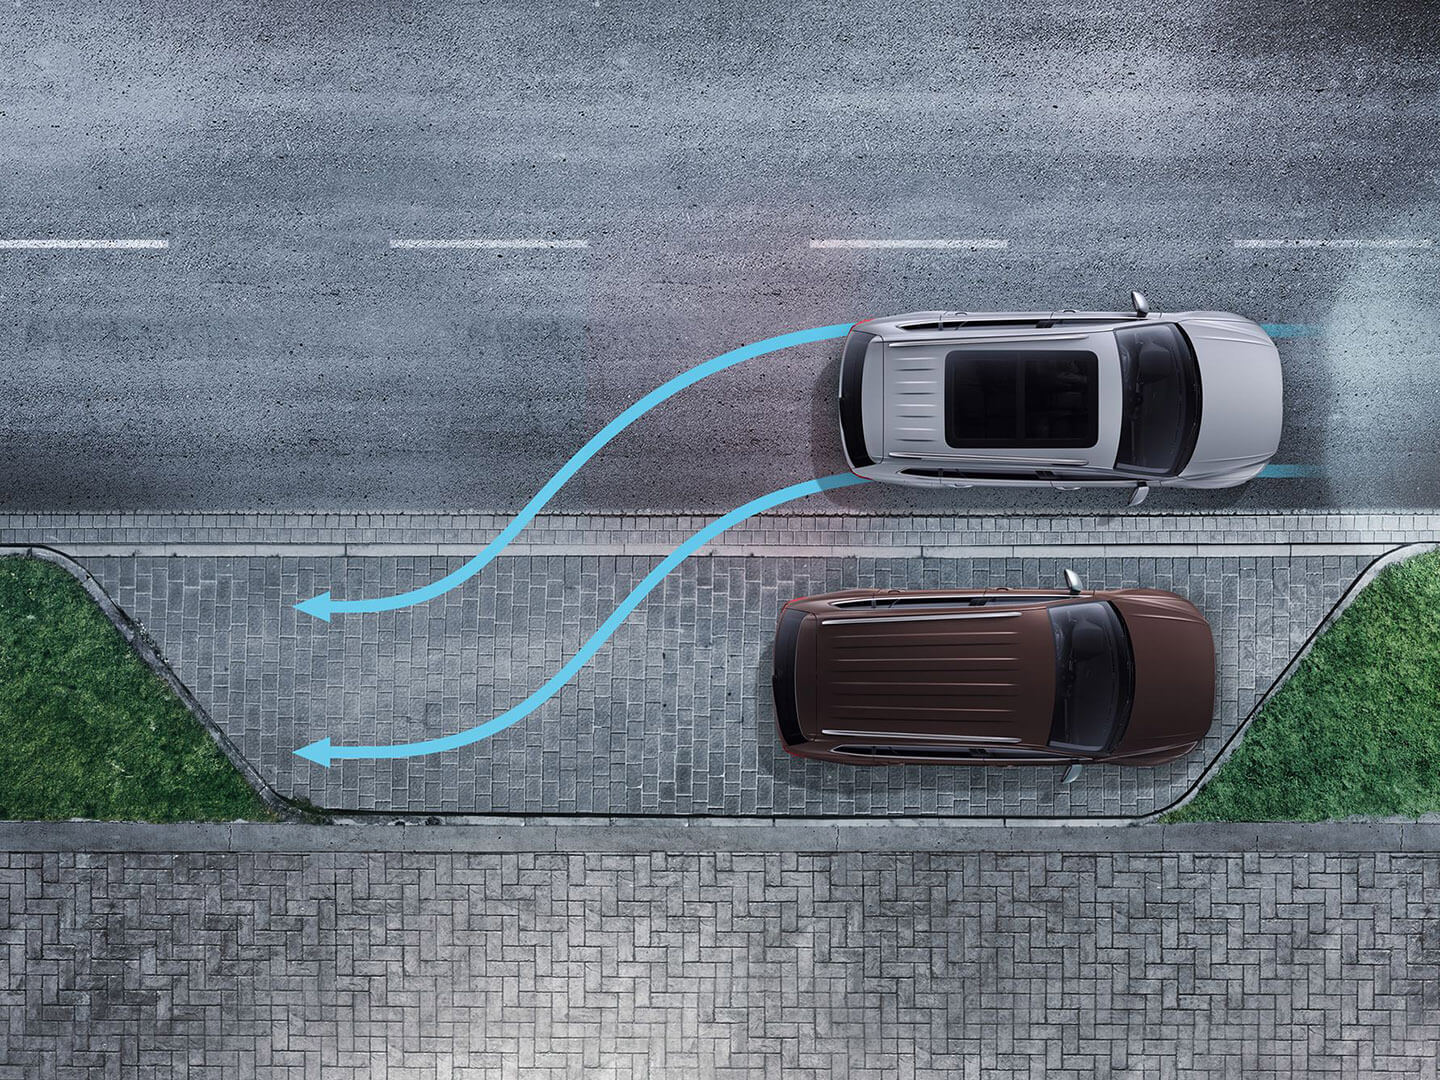 Scratch-free parking Manoeuvre Braking Image